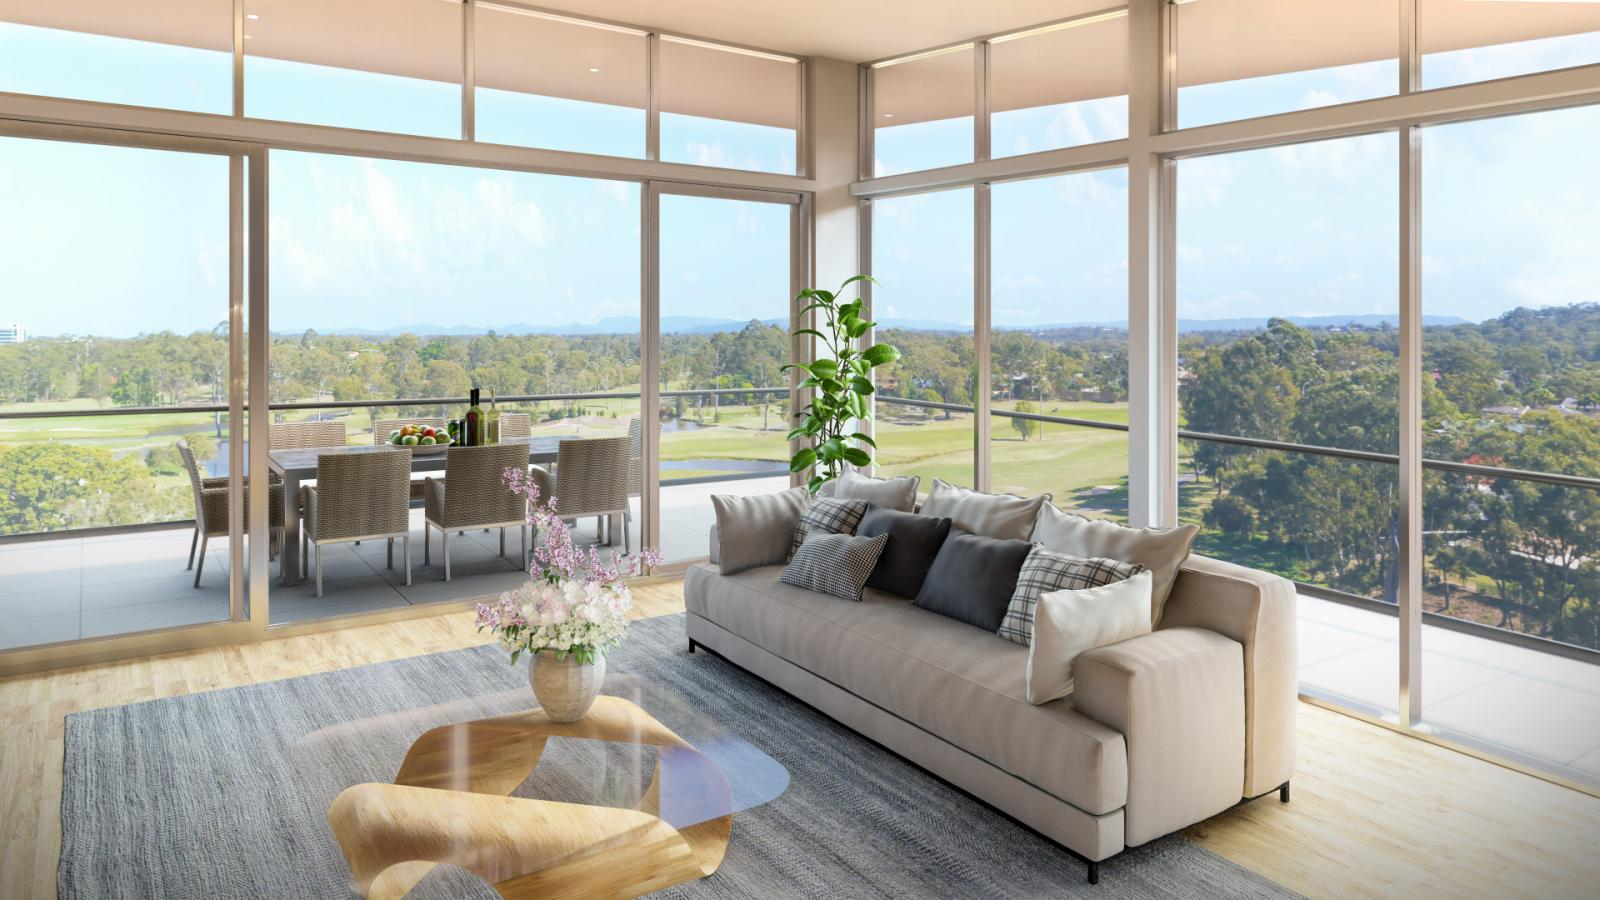 Apartments at Parkwood will have great golf course views